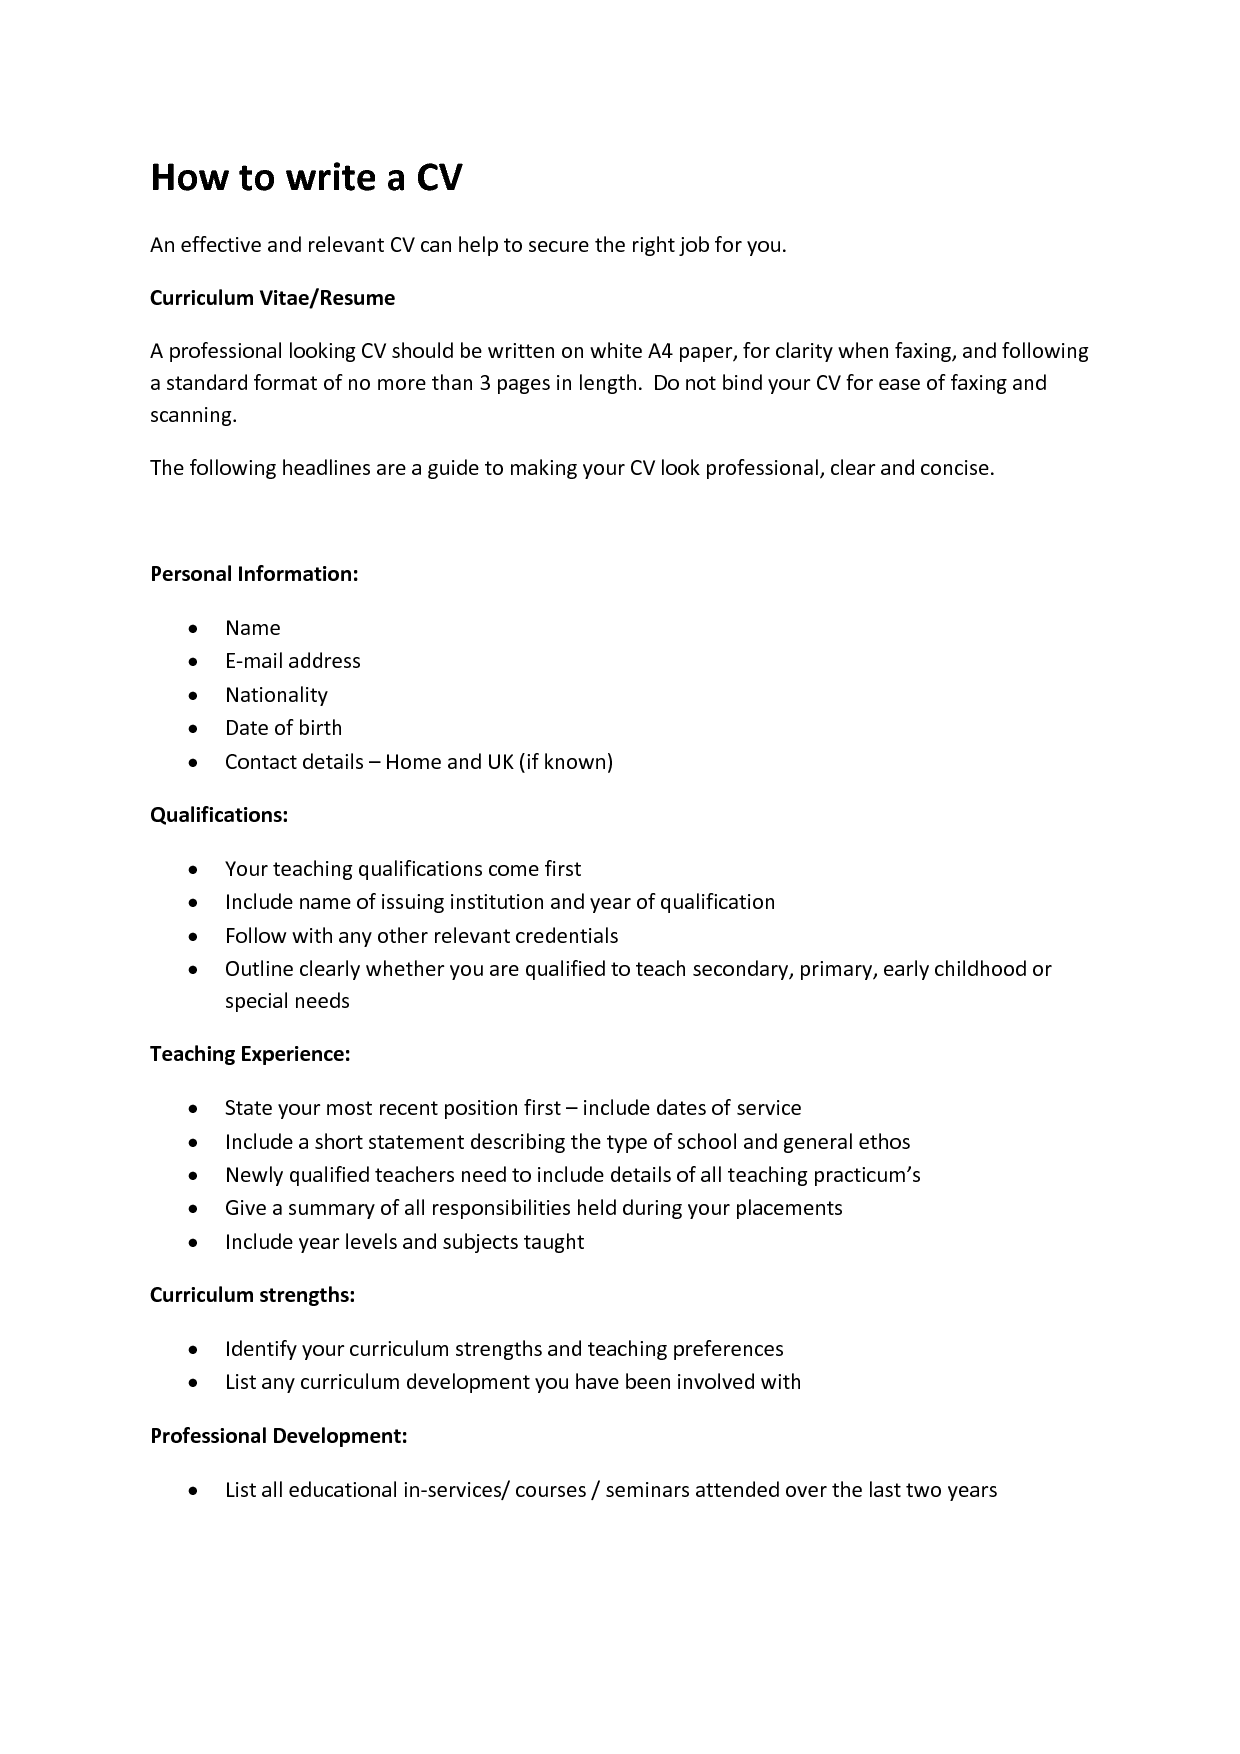 writing uk style cv and cover The cv and covering letter together form a marketing package, designed to  or  underline too many styles can make the cv look crowded and complicated.